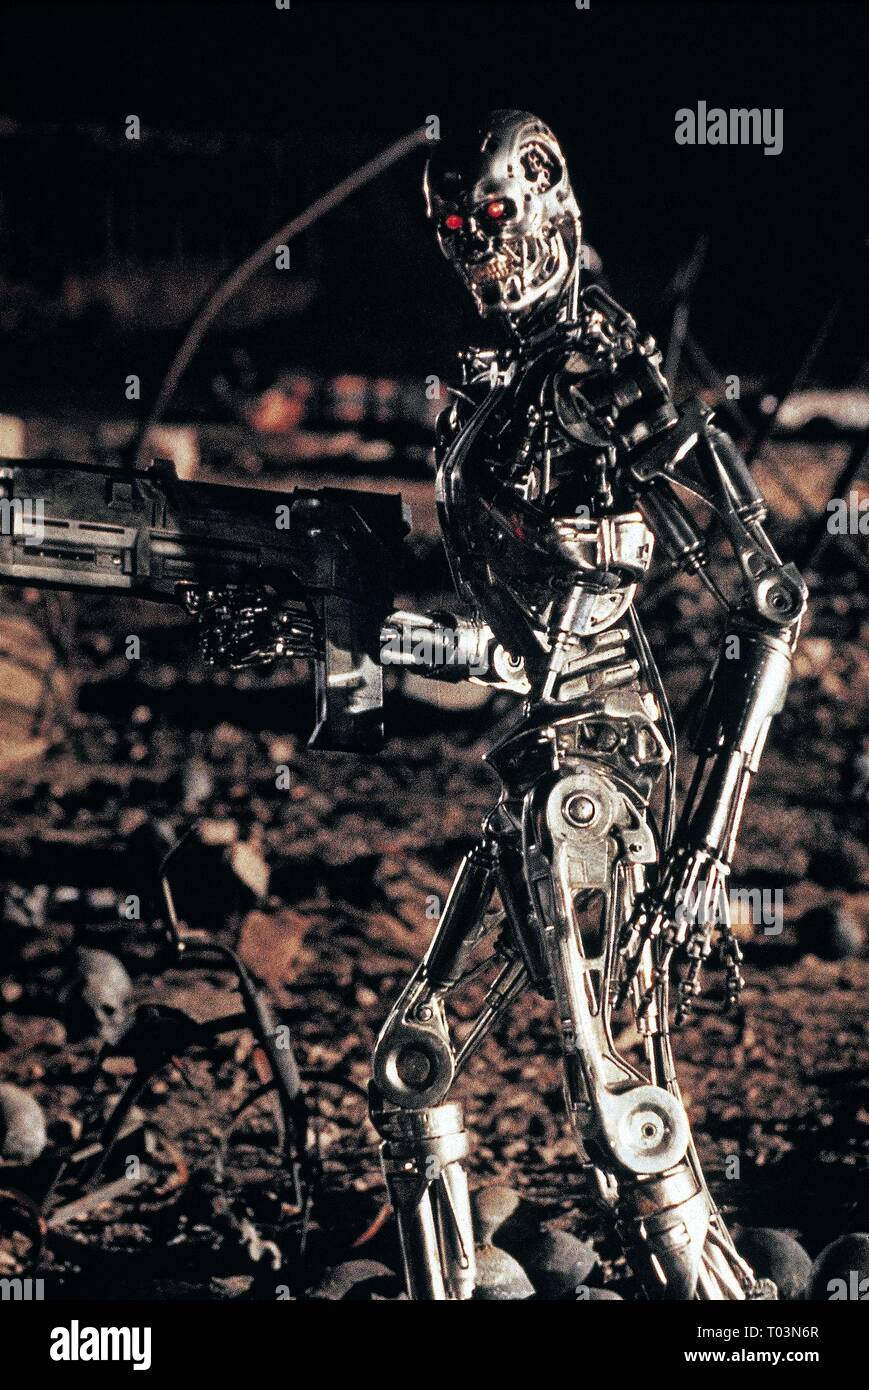 TERMINATOR 2: JUDGMENT DAY, T-800 ROBOT, 1991 - Stock Image